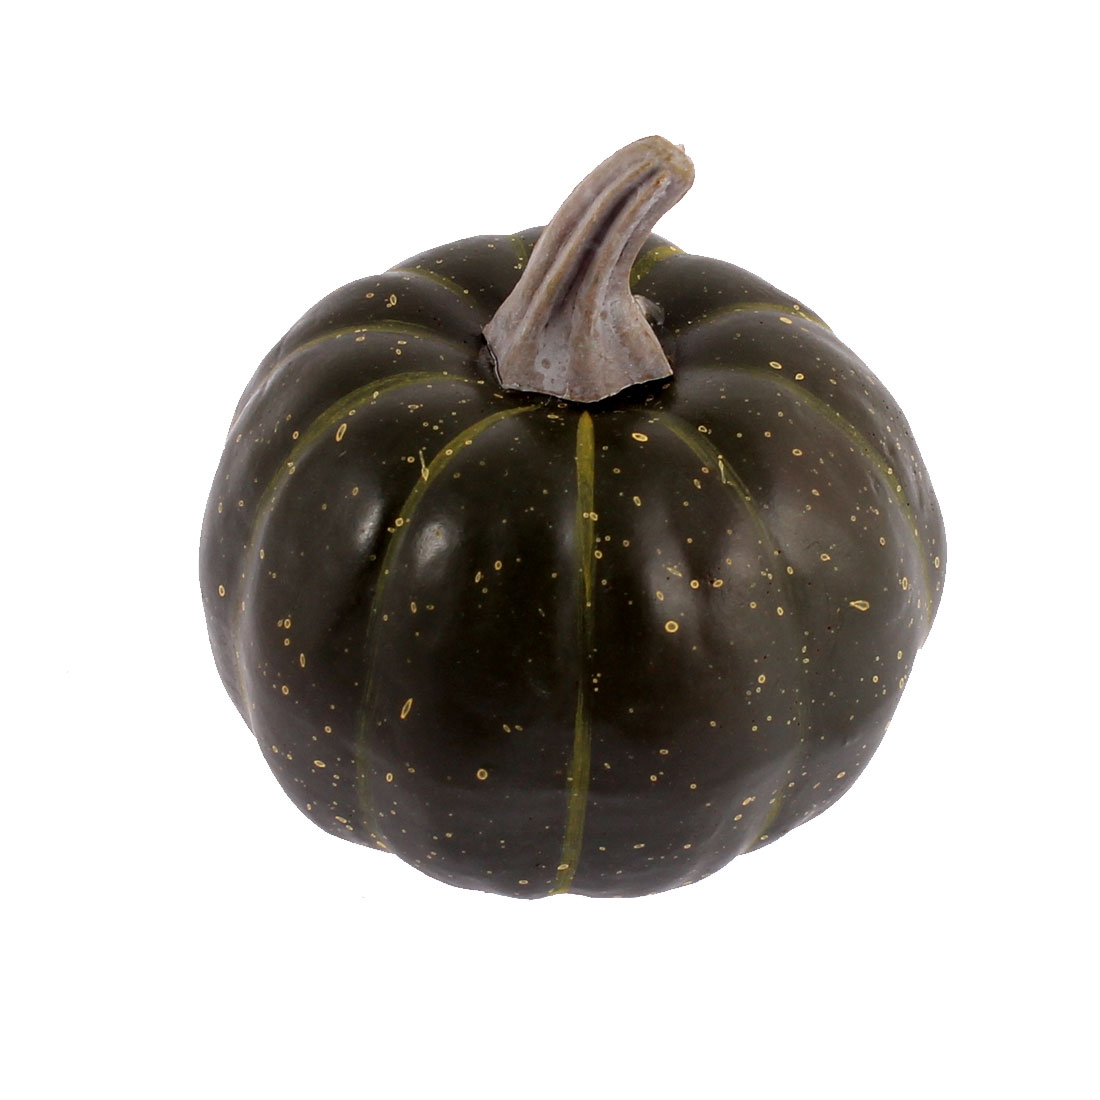 Home Artificial Foam Pumpkins Vegetable Decoration